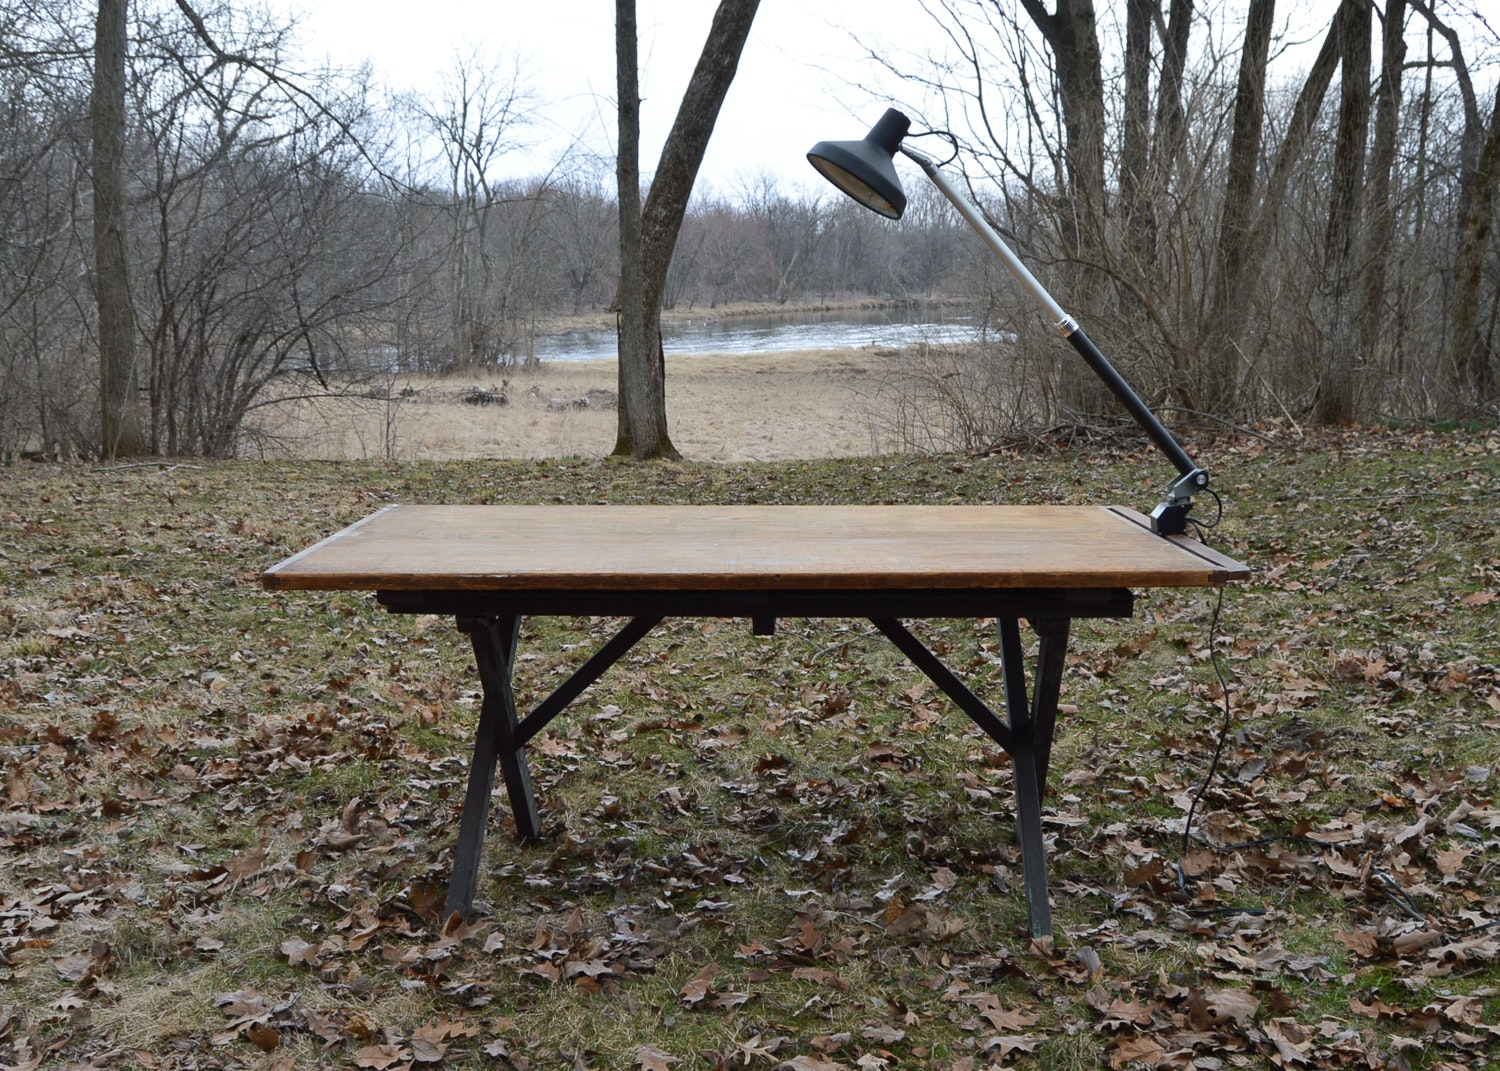 Workshop Tabletop With Picnic Table Base And Swing Arm Light